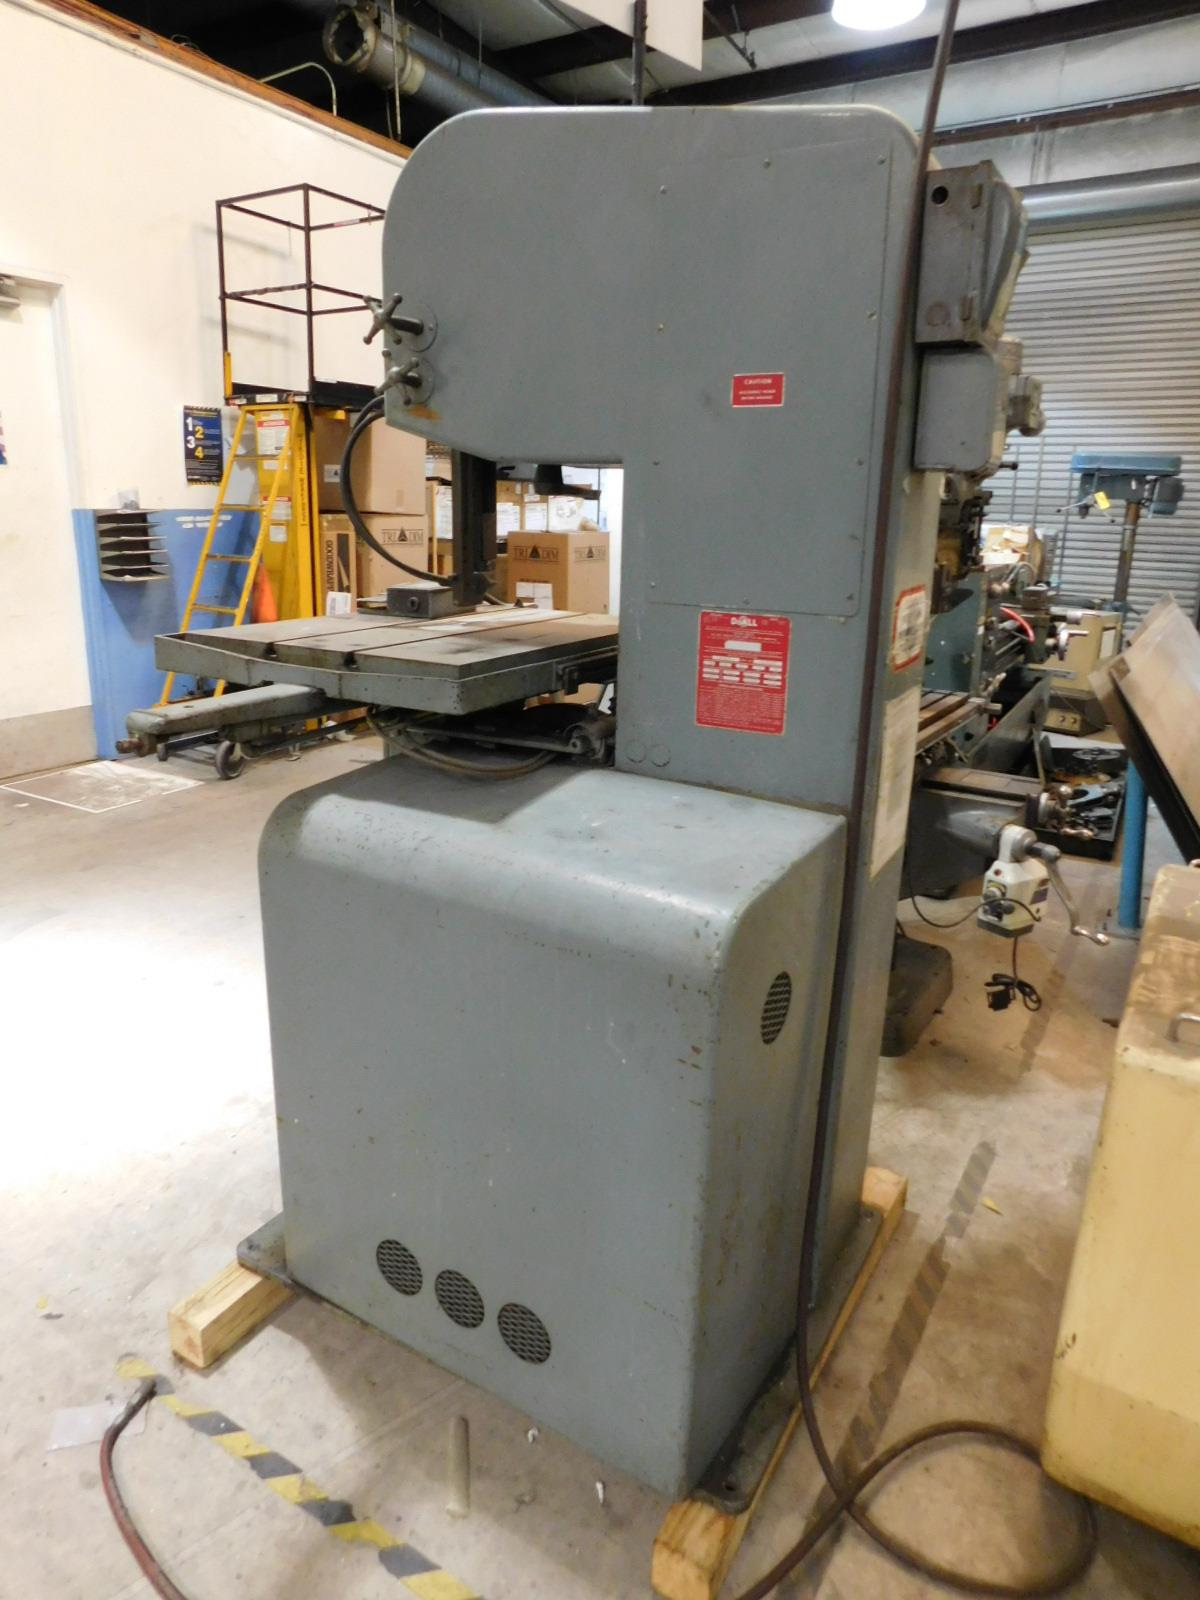 "Lot 15 - DOALL VERTICAL BANDSAW, MODEL 1612-3, S/N 152-67848, W/ DOALL BLADE WELDER, TABLE 30-1/2"" X 24"""